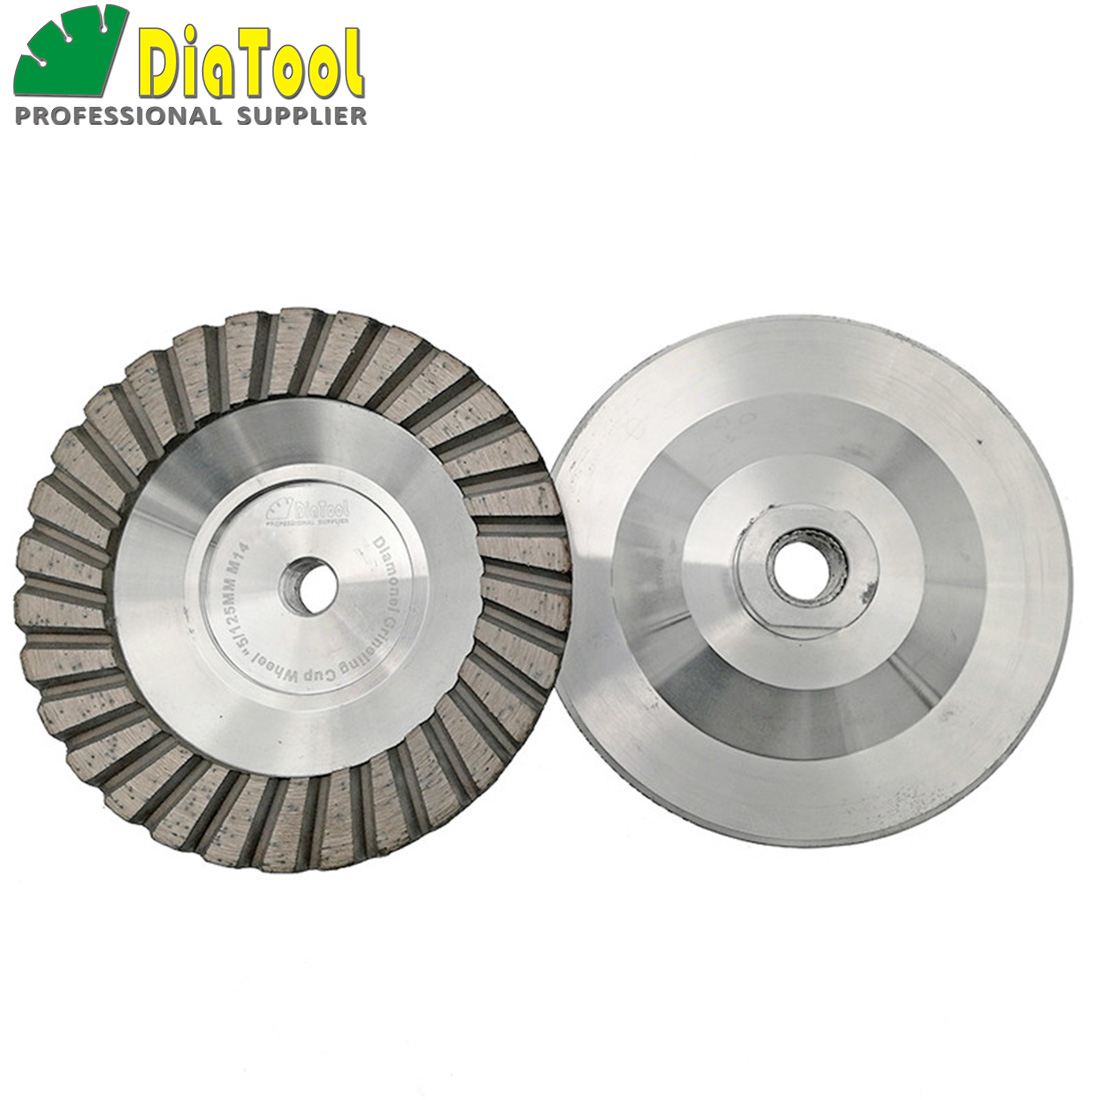 DIATOOL 2PK Dia 125mm/5inch Aluminum Based Diamond Grinding Cup Wheel M14 thread Grit #30 Grinding Wheel For Granite Concrete цена